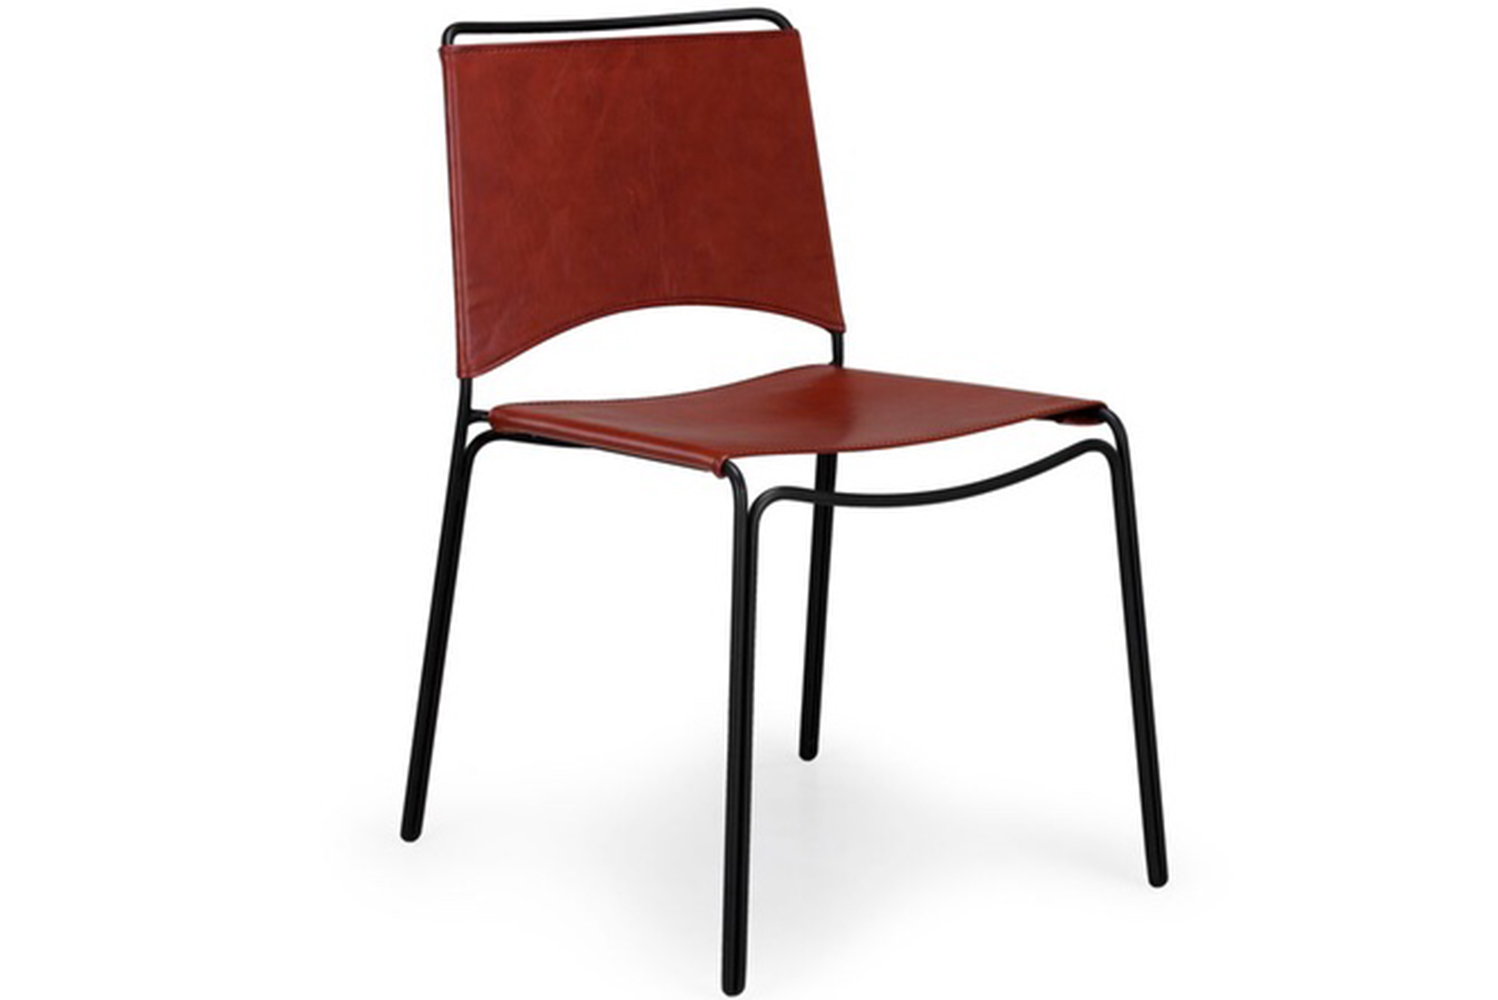 The Trace dining chair has a minimalist powder-coated steel wire frame paired with either a stitched leather or molded plywood seat.